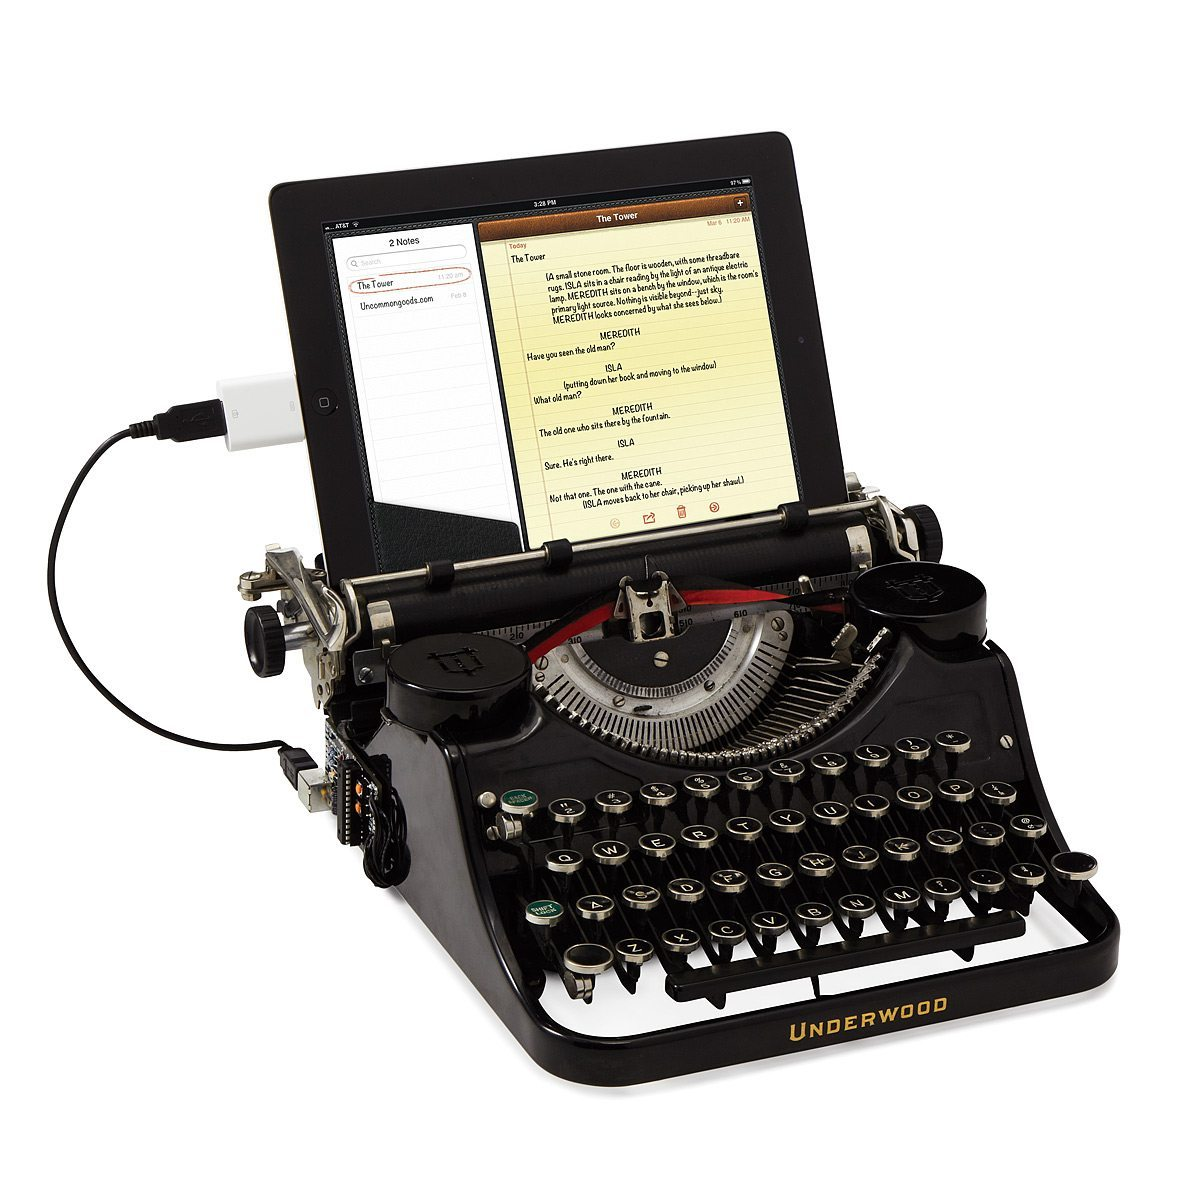 Photo of a vintage looking black typewriter that plugs into a computer via USB